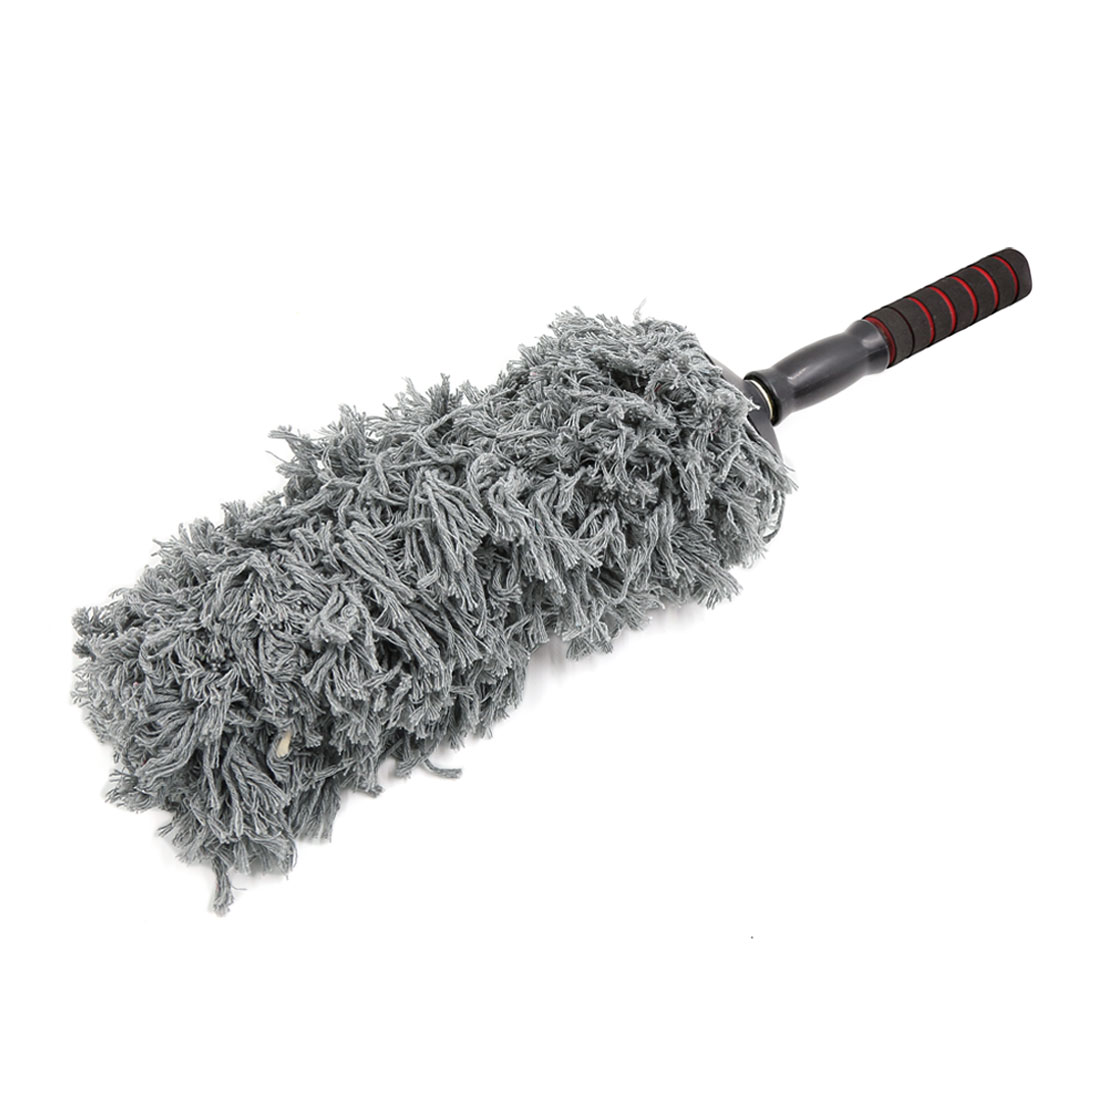 Sponges, Cloths & Brushes Alert Uxcell Car Carpet Chair Door Plastic Cleaning Brushes Cleaner Tool Black Gray 2 Pcs